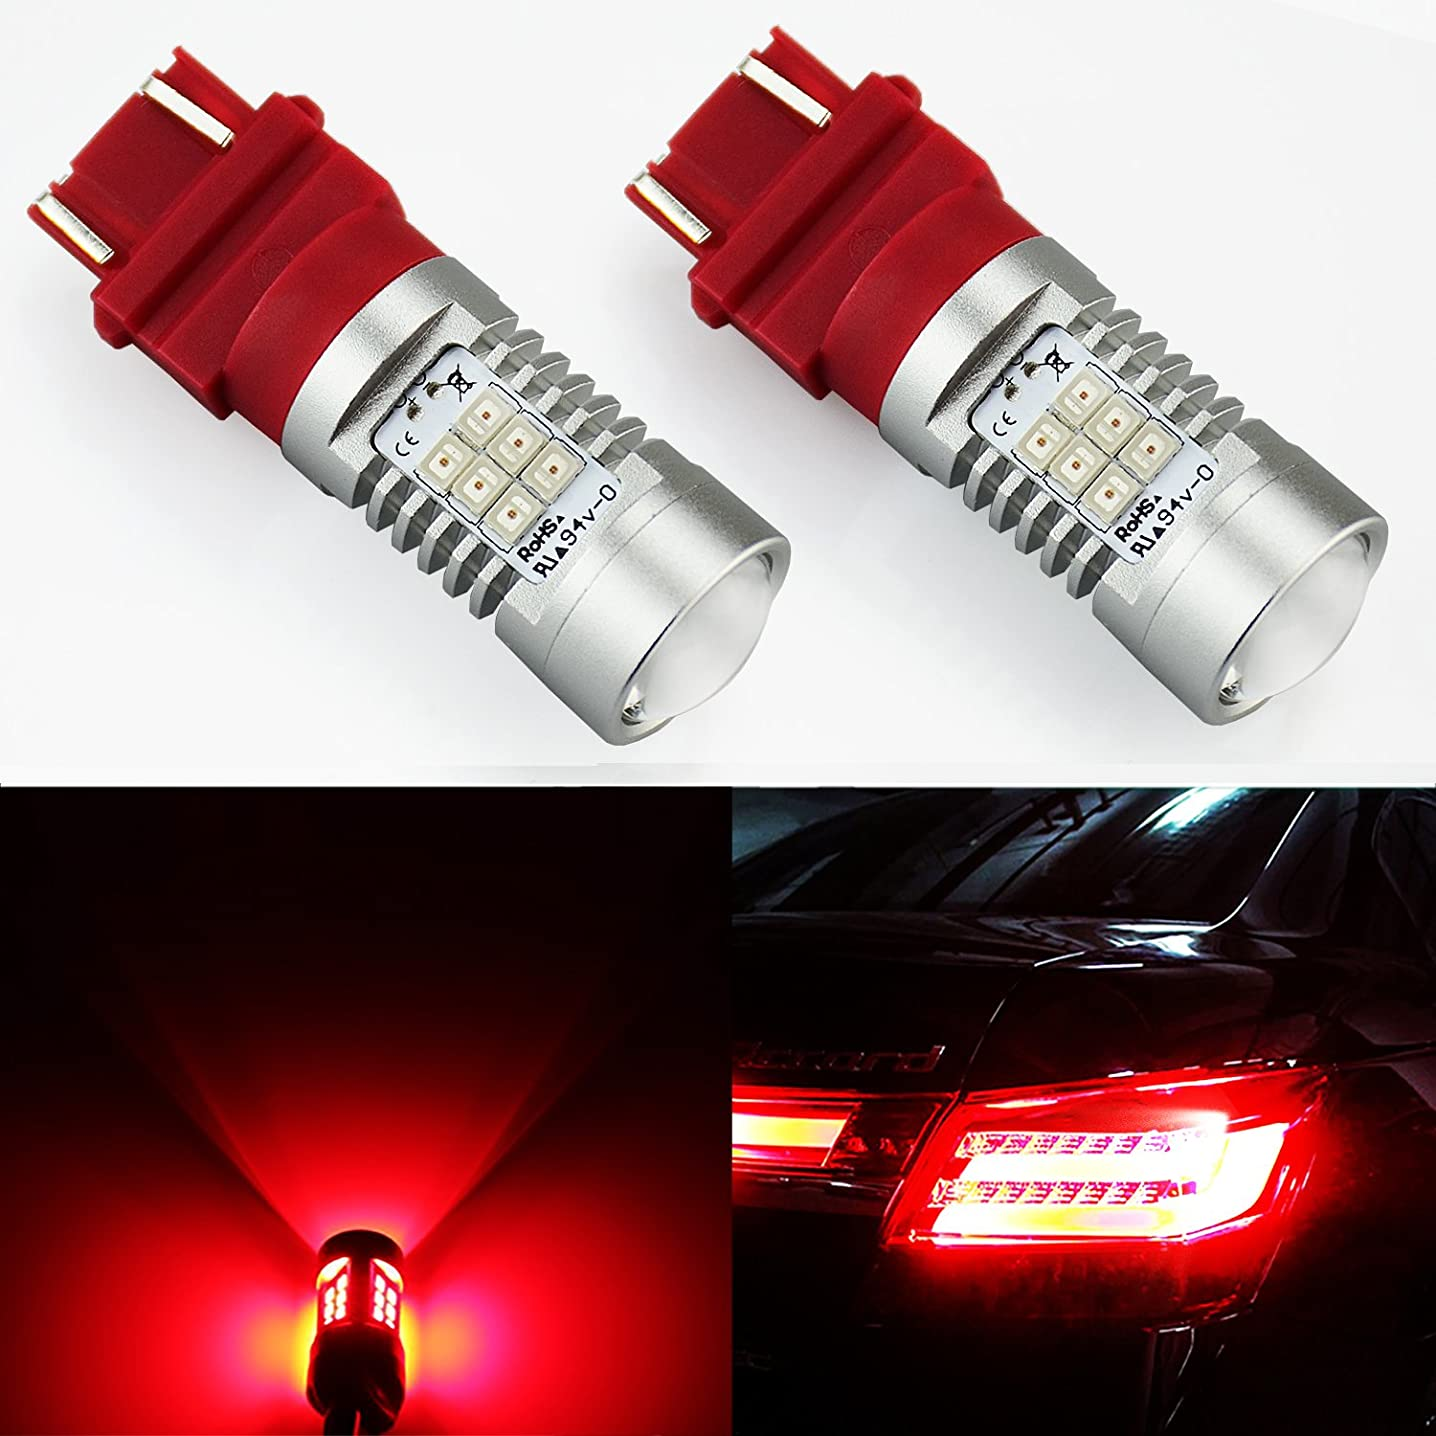 JDM ASTAR 1260 Lumens Extremely Bright PX Chipsets 3056 3156 3057 3157 LED Bulb For Brake Light Tail lights Turn Signal, Brilliant Red